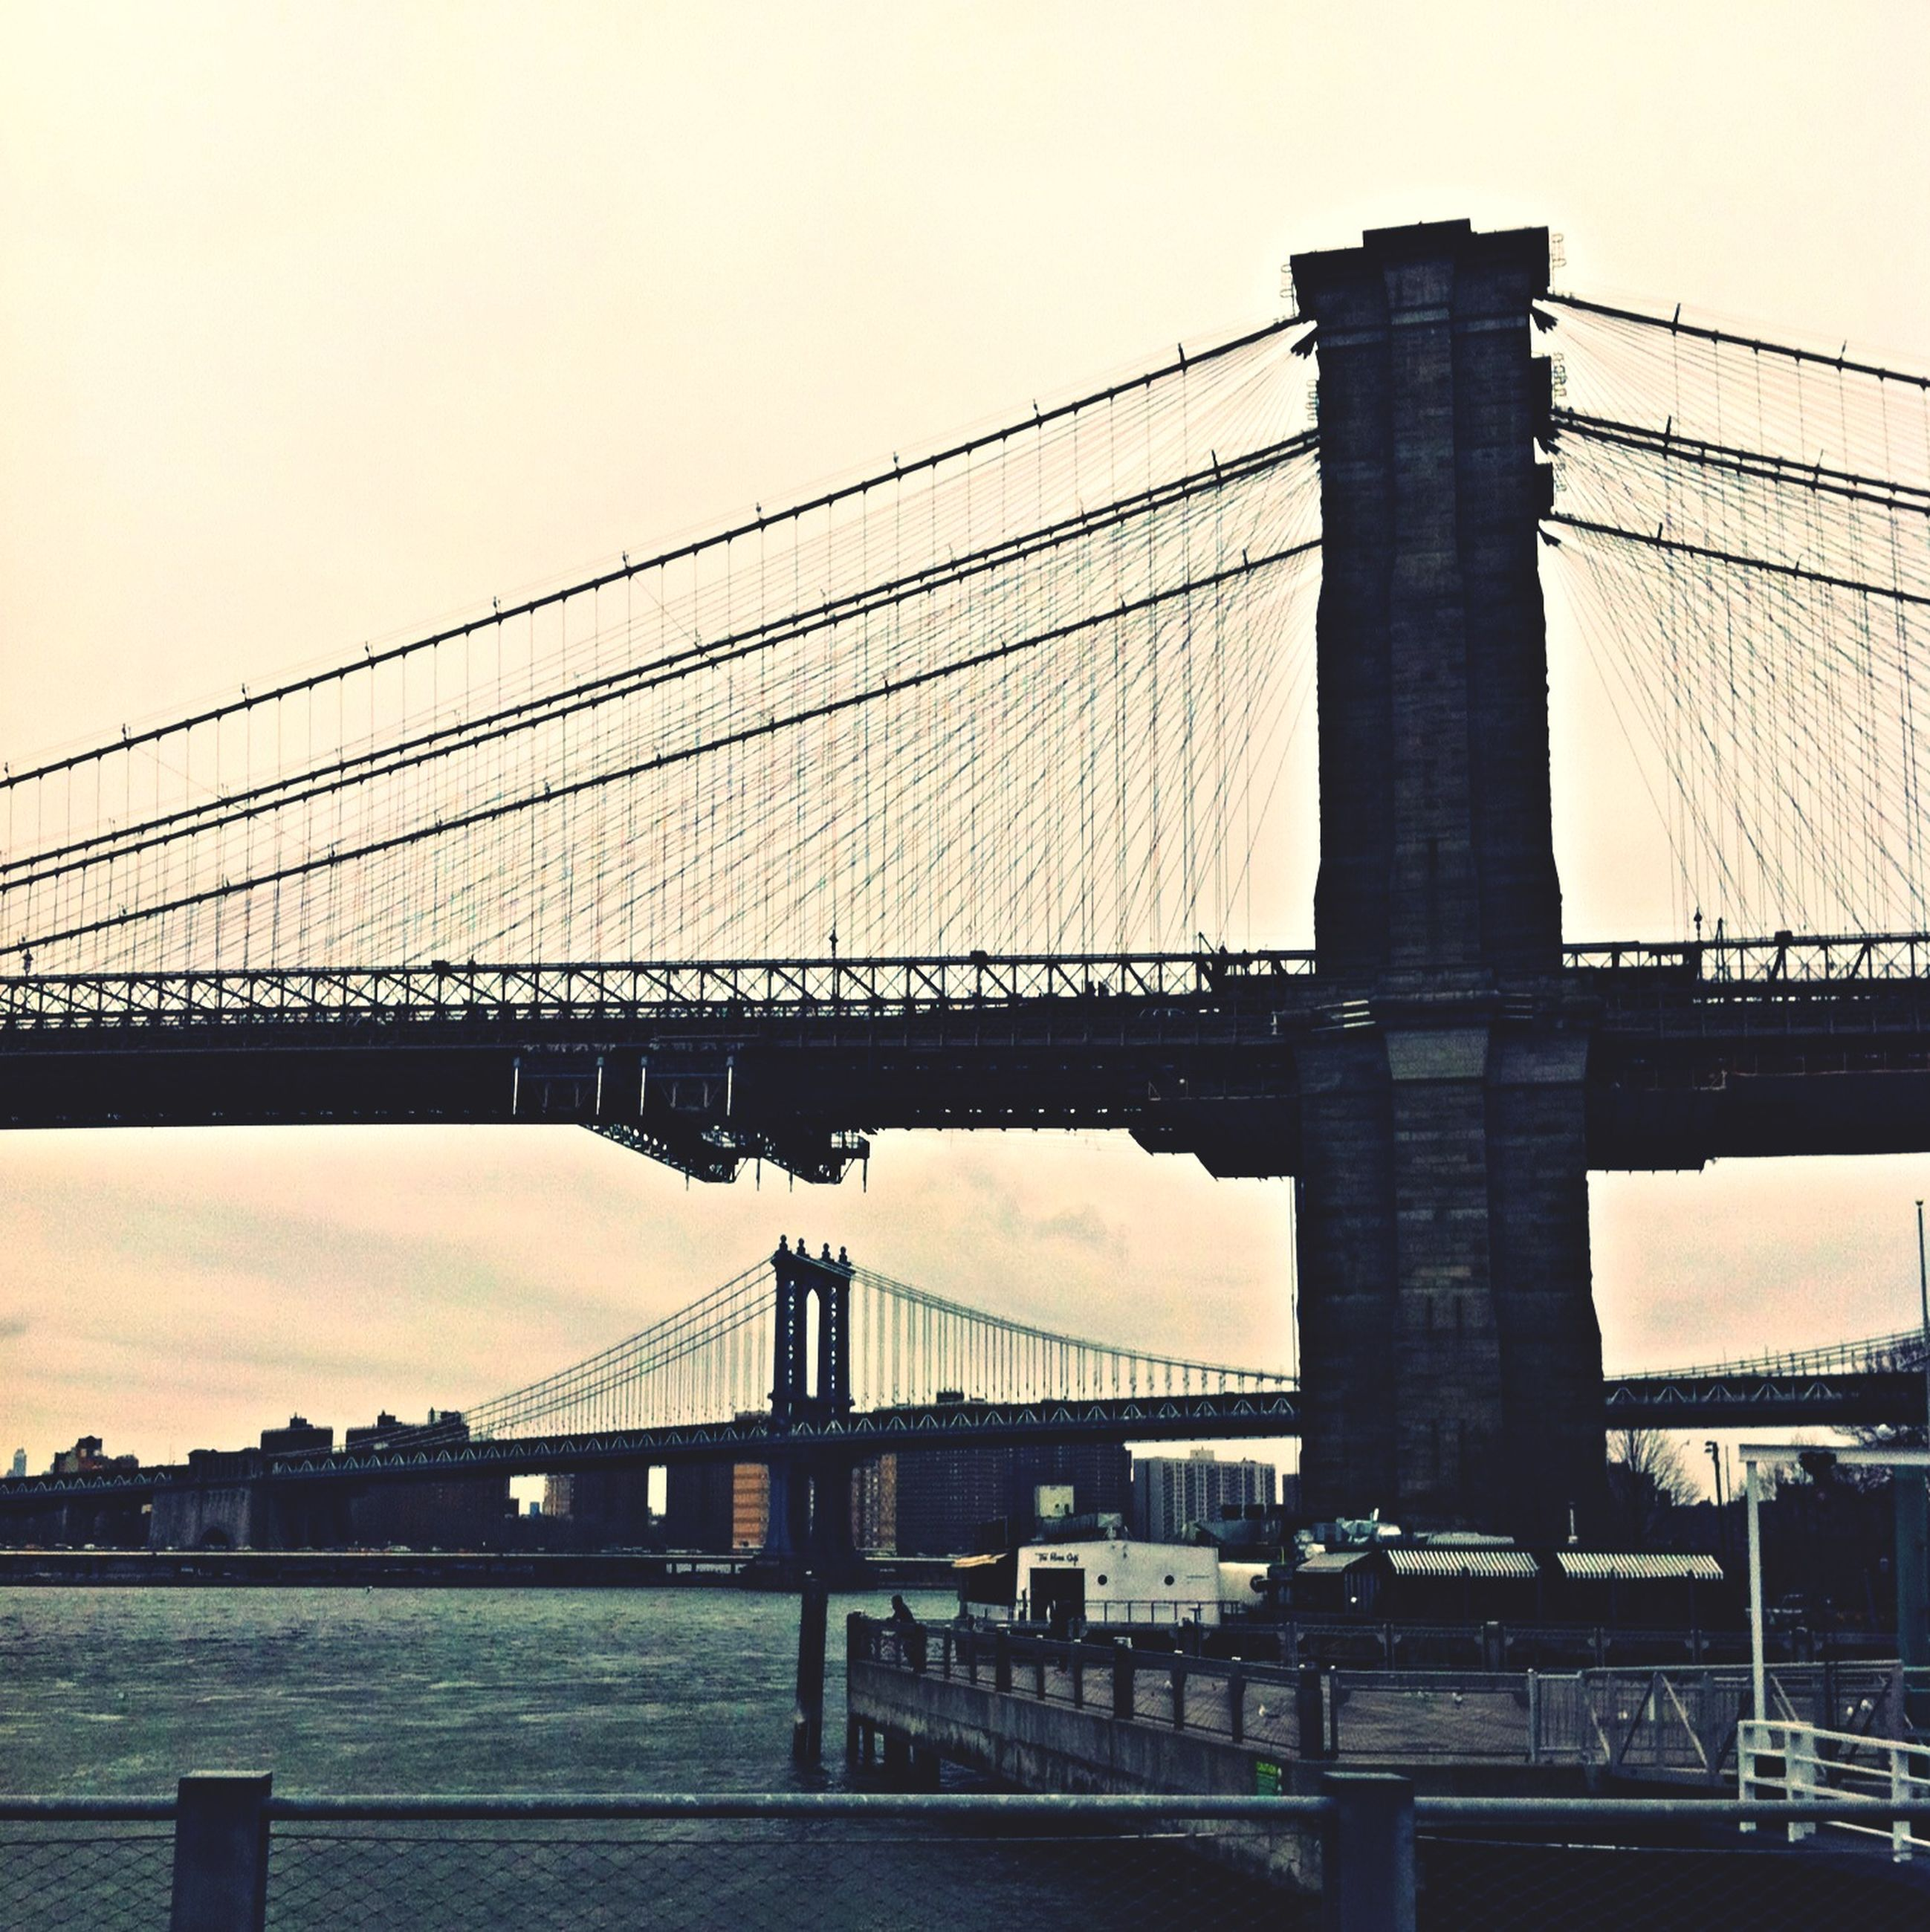 connection, bridge - man made structure, built structure, architecture, engineering, suspension bridge, bridge, transportation, clear sky, low angle view, cable-stayed bridge, cable, sky, city, travel destinations, river, long, brooklyn bridge, outdoors, no people